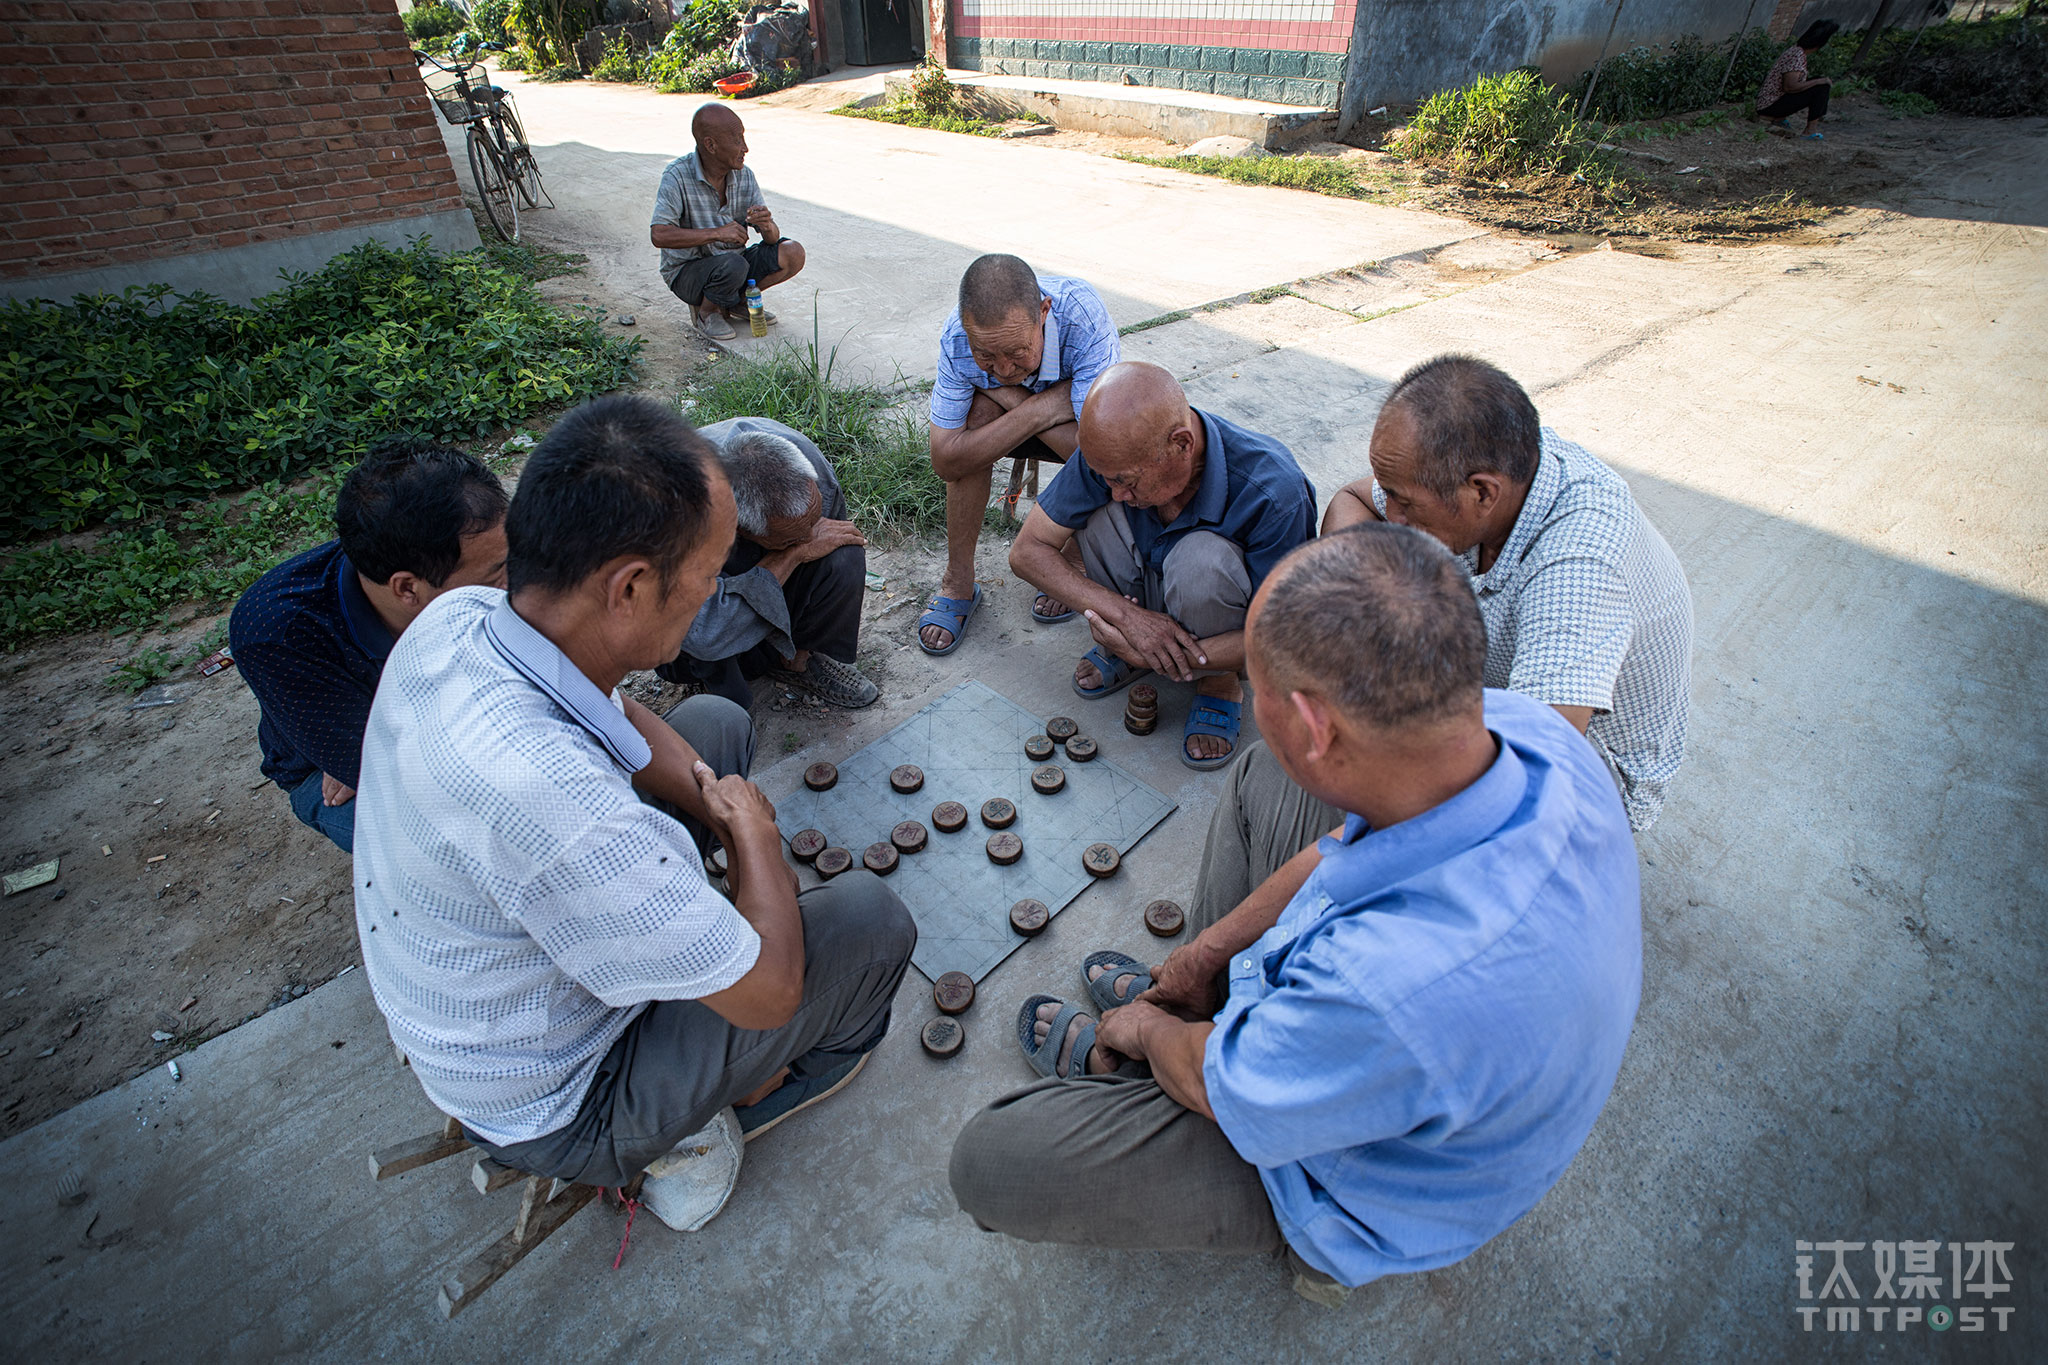 Near the health center, there were a few old people playing chess by the road. Most of the young population in the village has gone out for work opportunities, leaving the old and kids behind. There are very few people as young as Shi Jinfeng that are currently staying in the village.